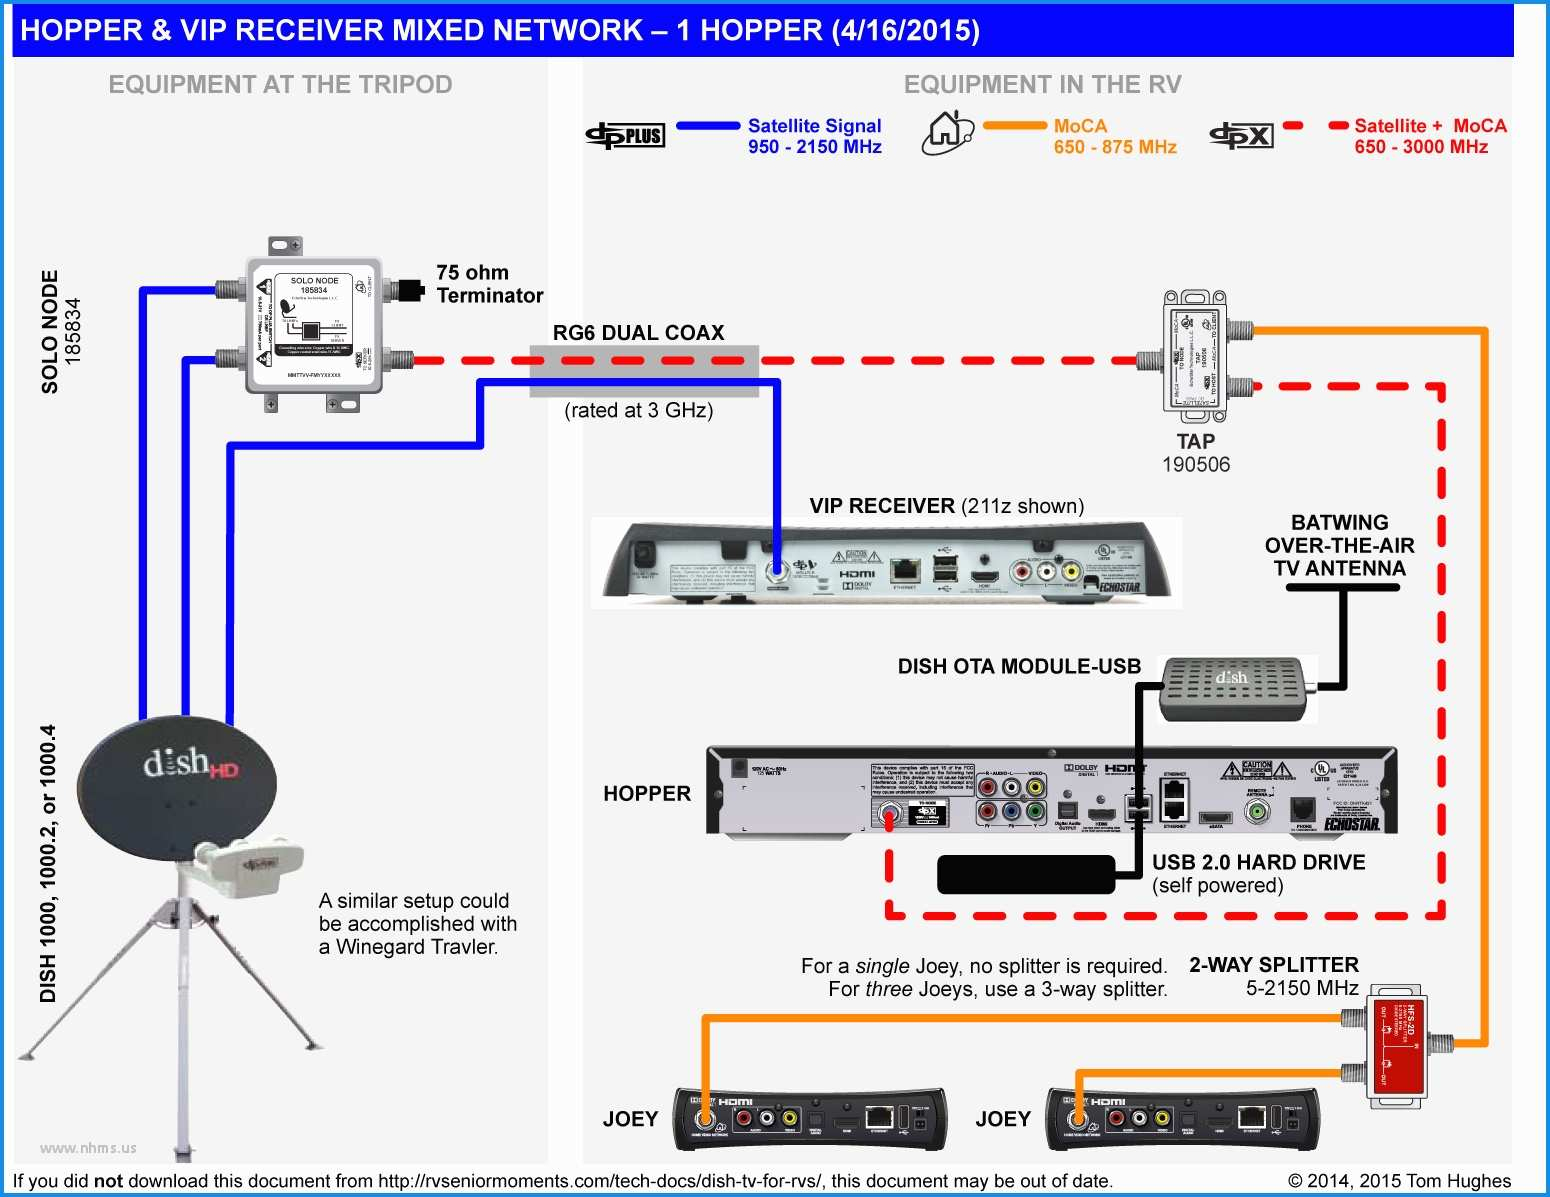 Hopper Wiring Diagram Heater | Wiring Diagram - Dish Hopper Joey Wiring Diagram